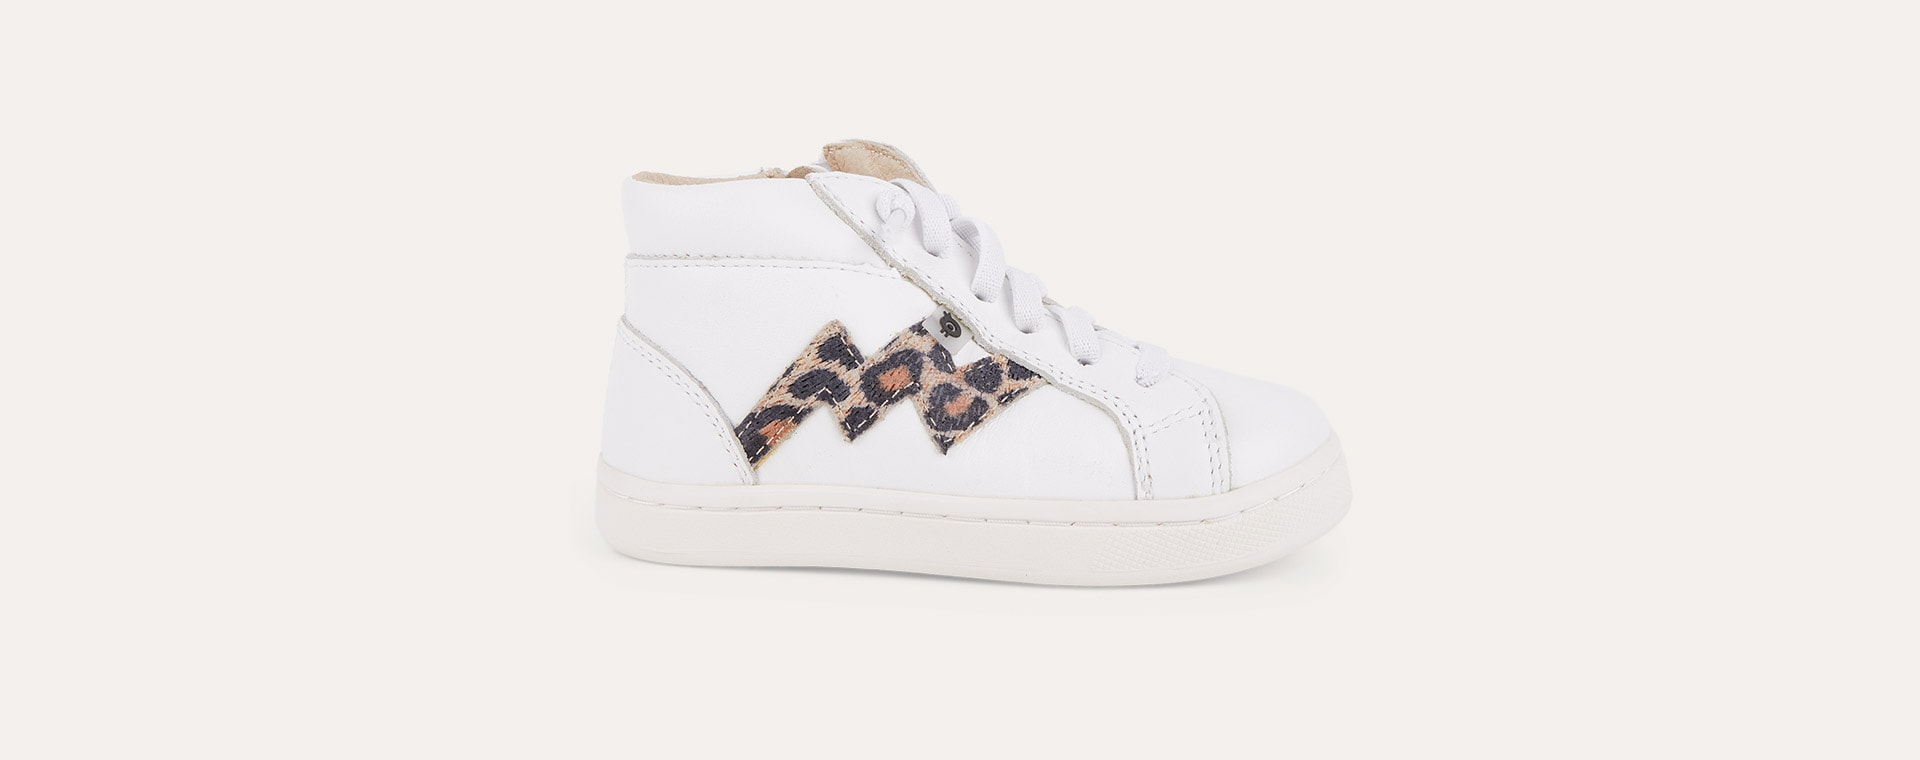 Snow / Kitten old soles Bolty High Top